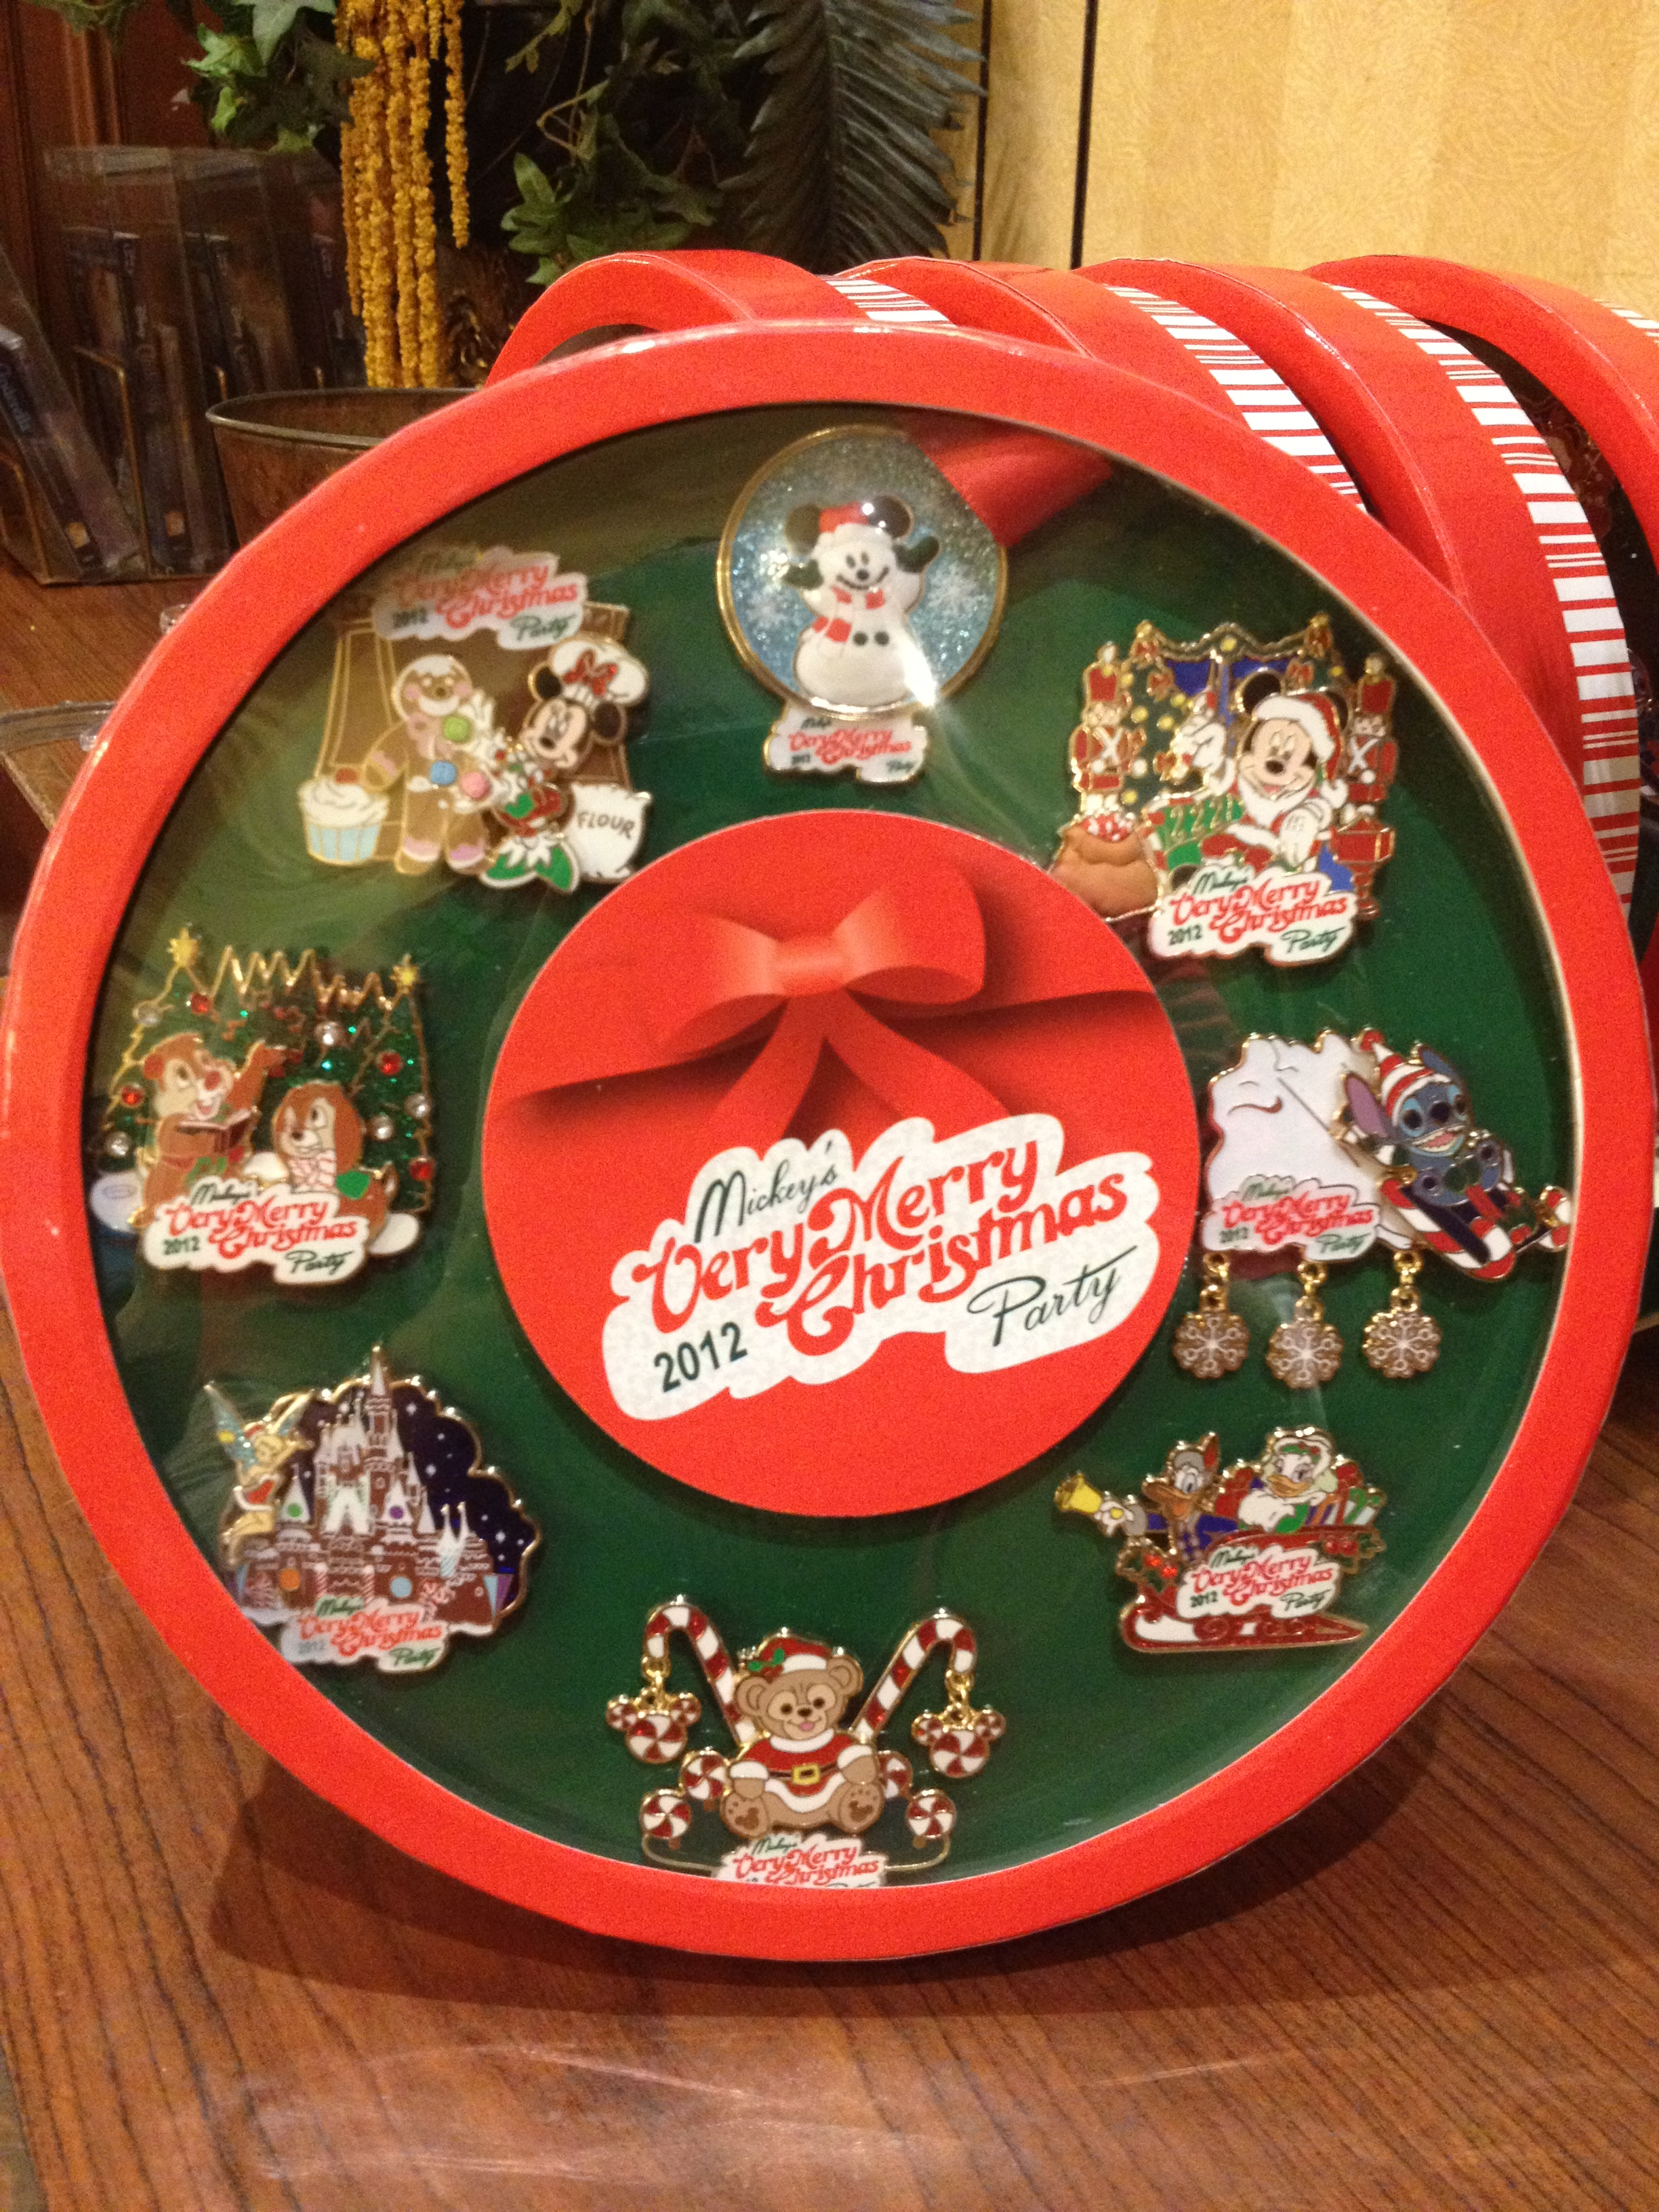 Mickeys Very Merry Christmas Party Merchandise.Mickey S Very Merry Christmas Party Merchandise On The Go